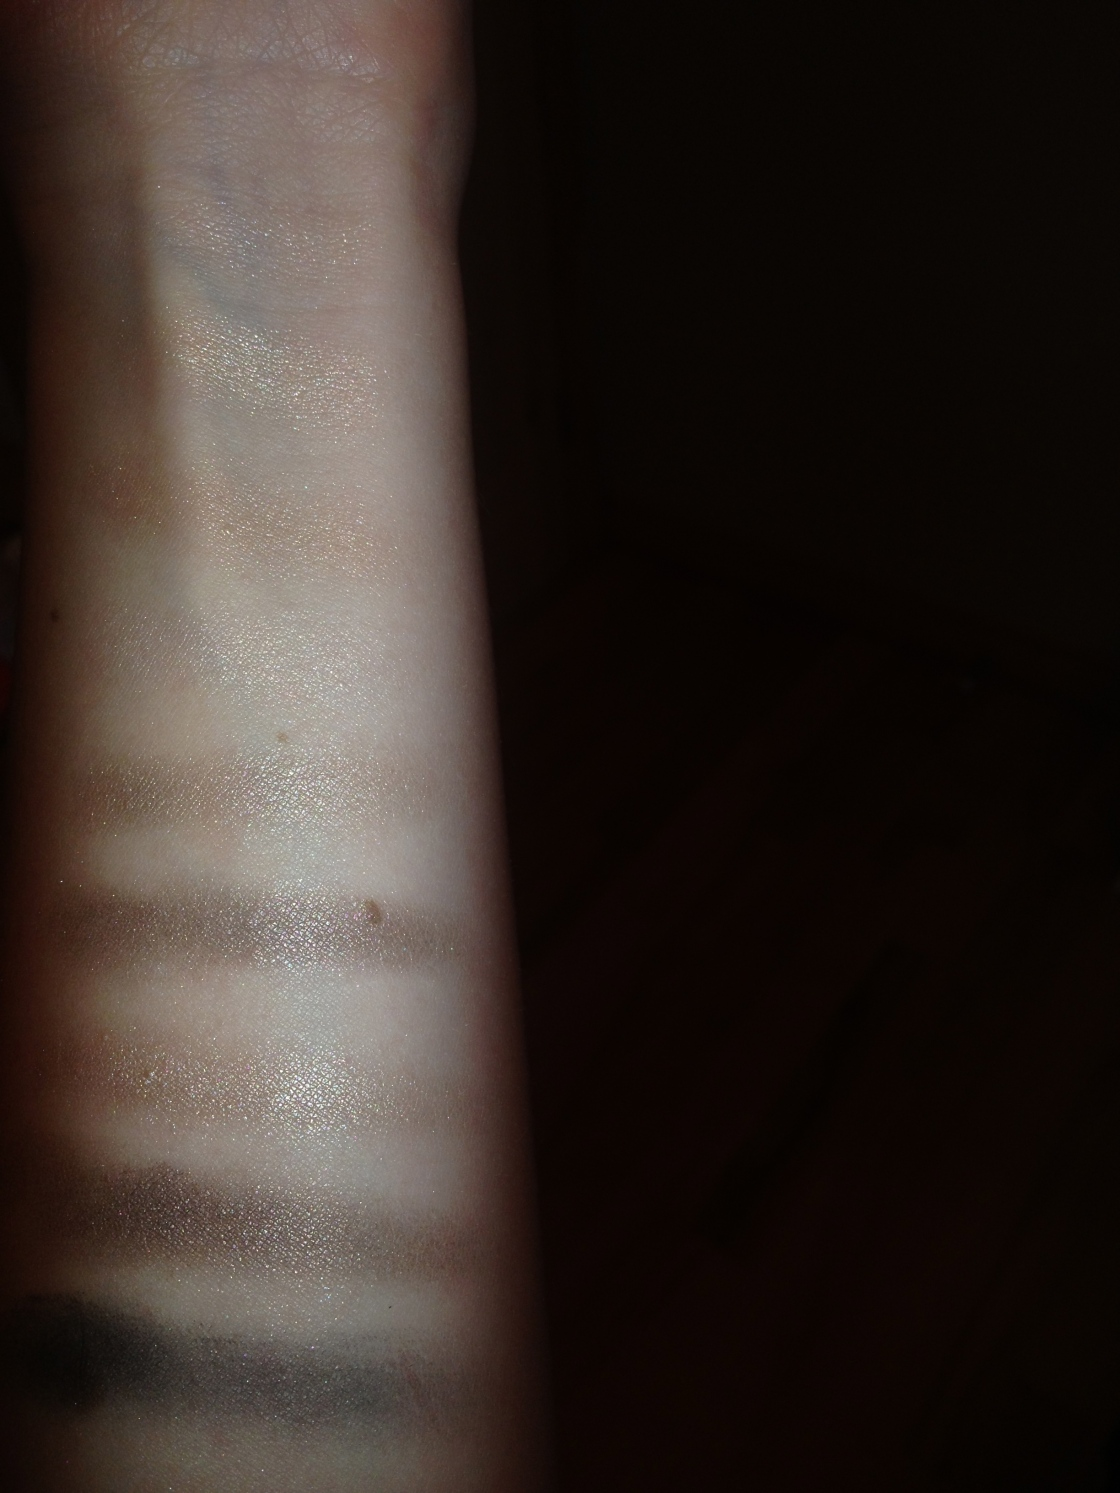 Swatches on bare skin, taken with flash